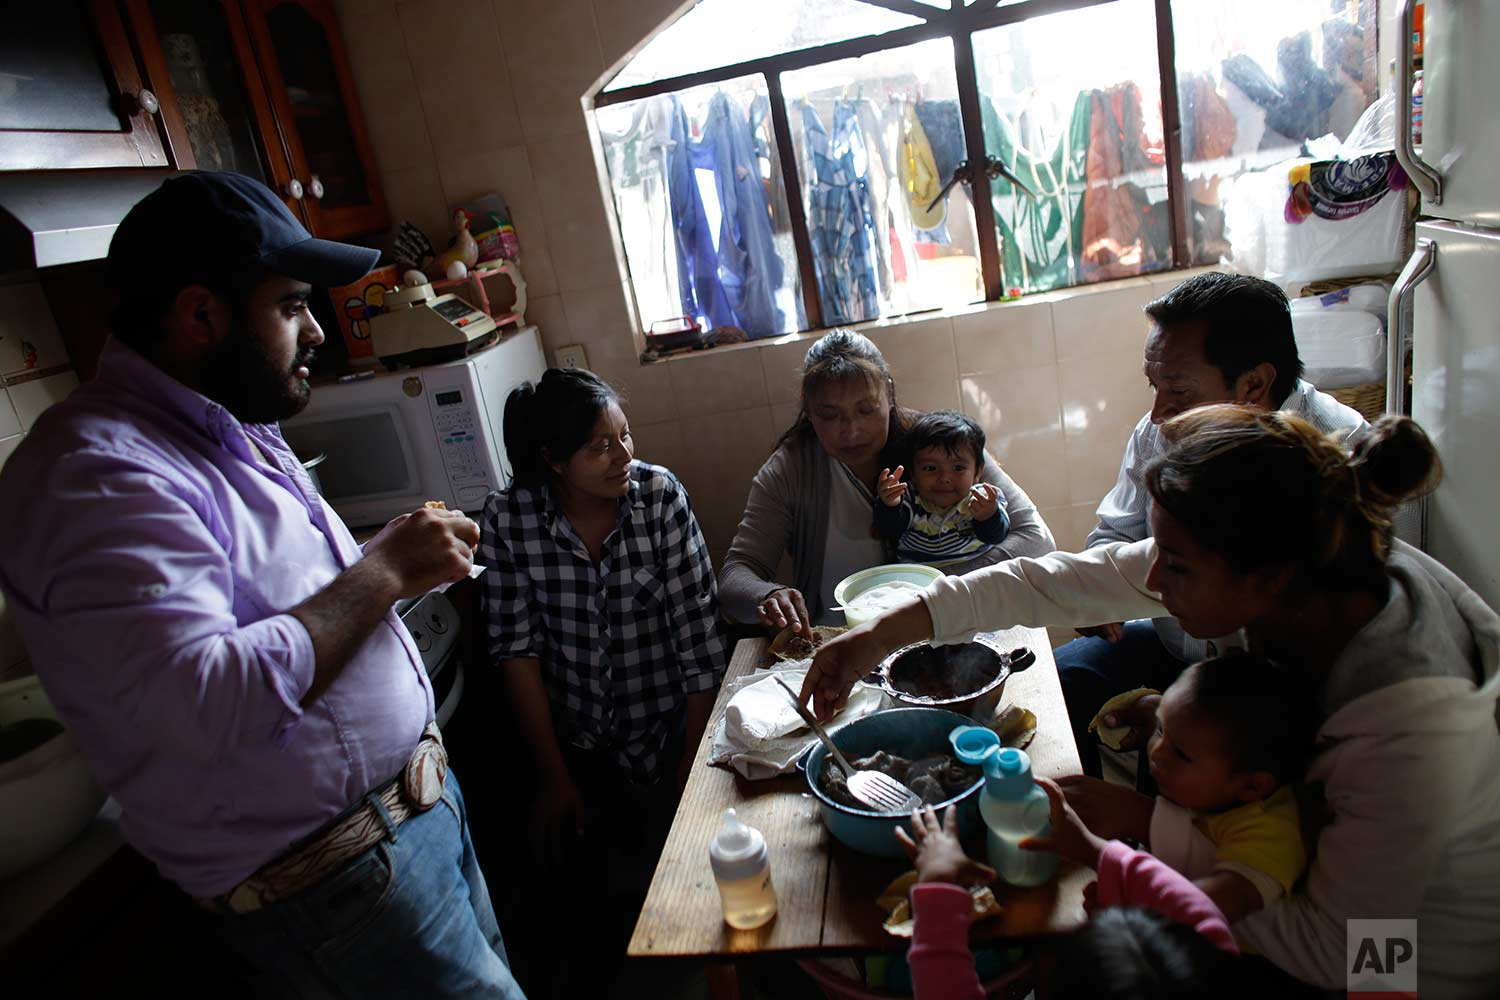 In this Aug. 23, 2017 photo, Juana Pedraza, center, holds her one-year-old grandson Jose Leonardo, who they call Leon, as the family eats breakfast in their home in Villa Cuauhtemoc, Mexico state. (AP Photo/Rebecca Blackwell)